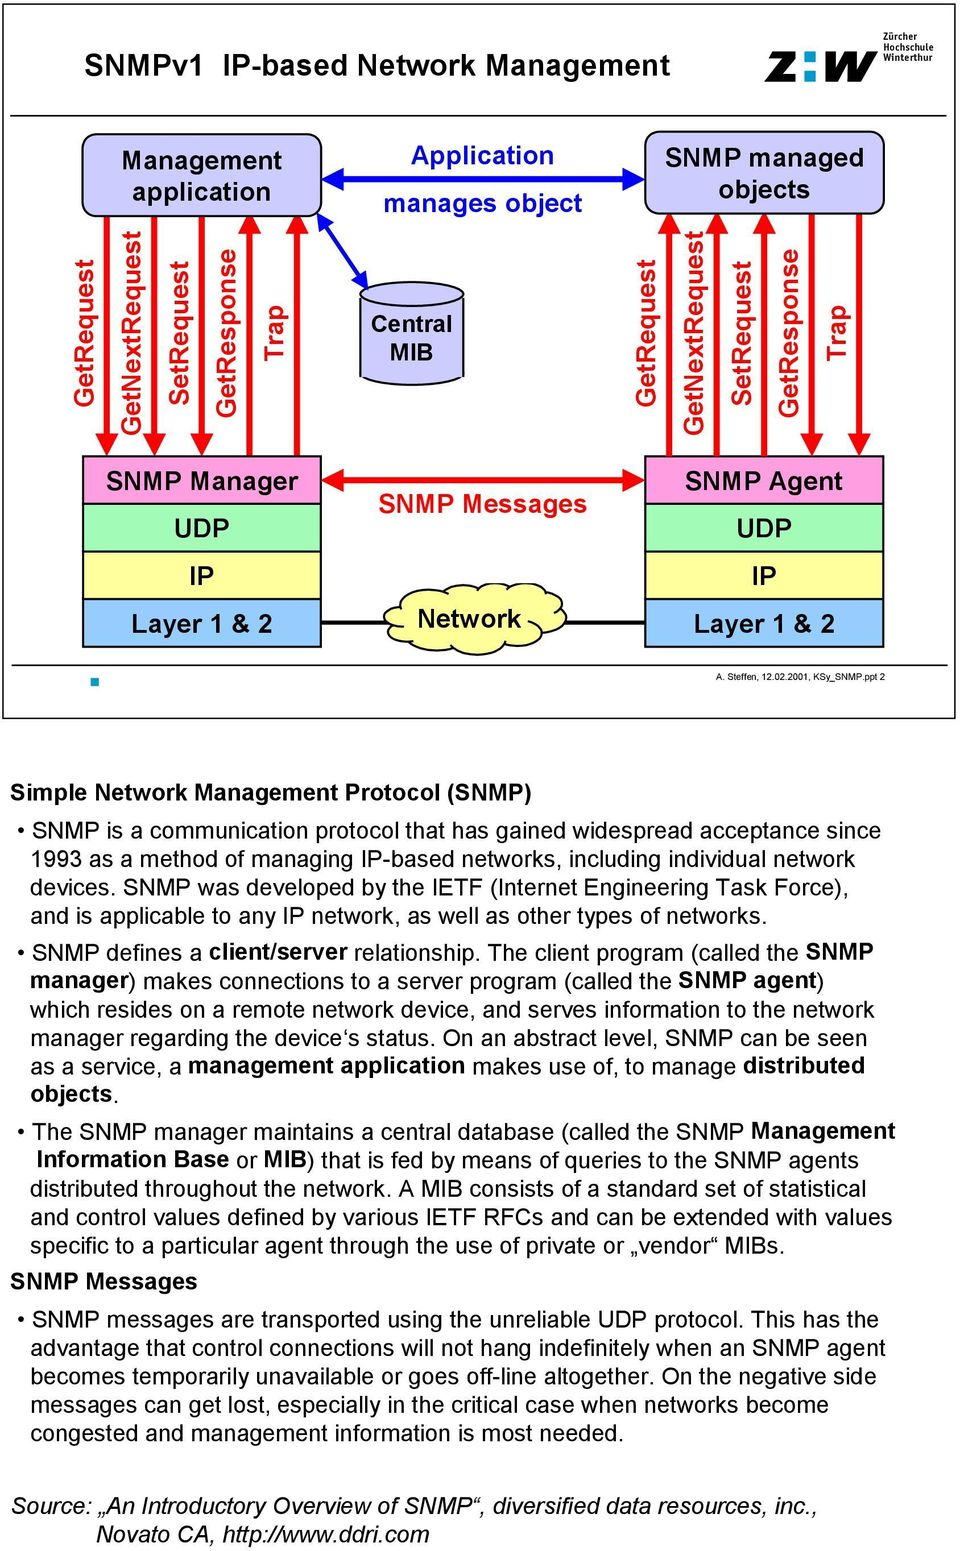 Simple Network Management Protocol SNMP - PDF